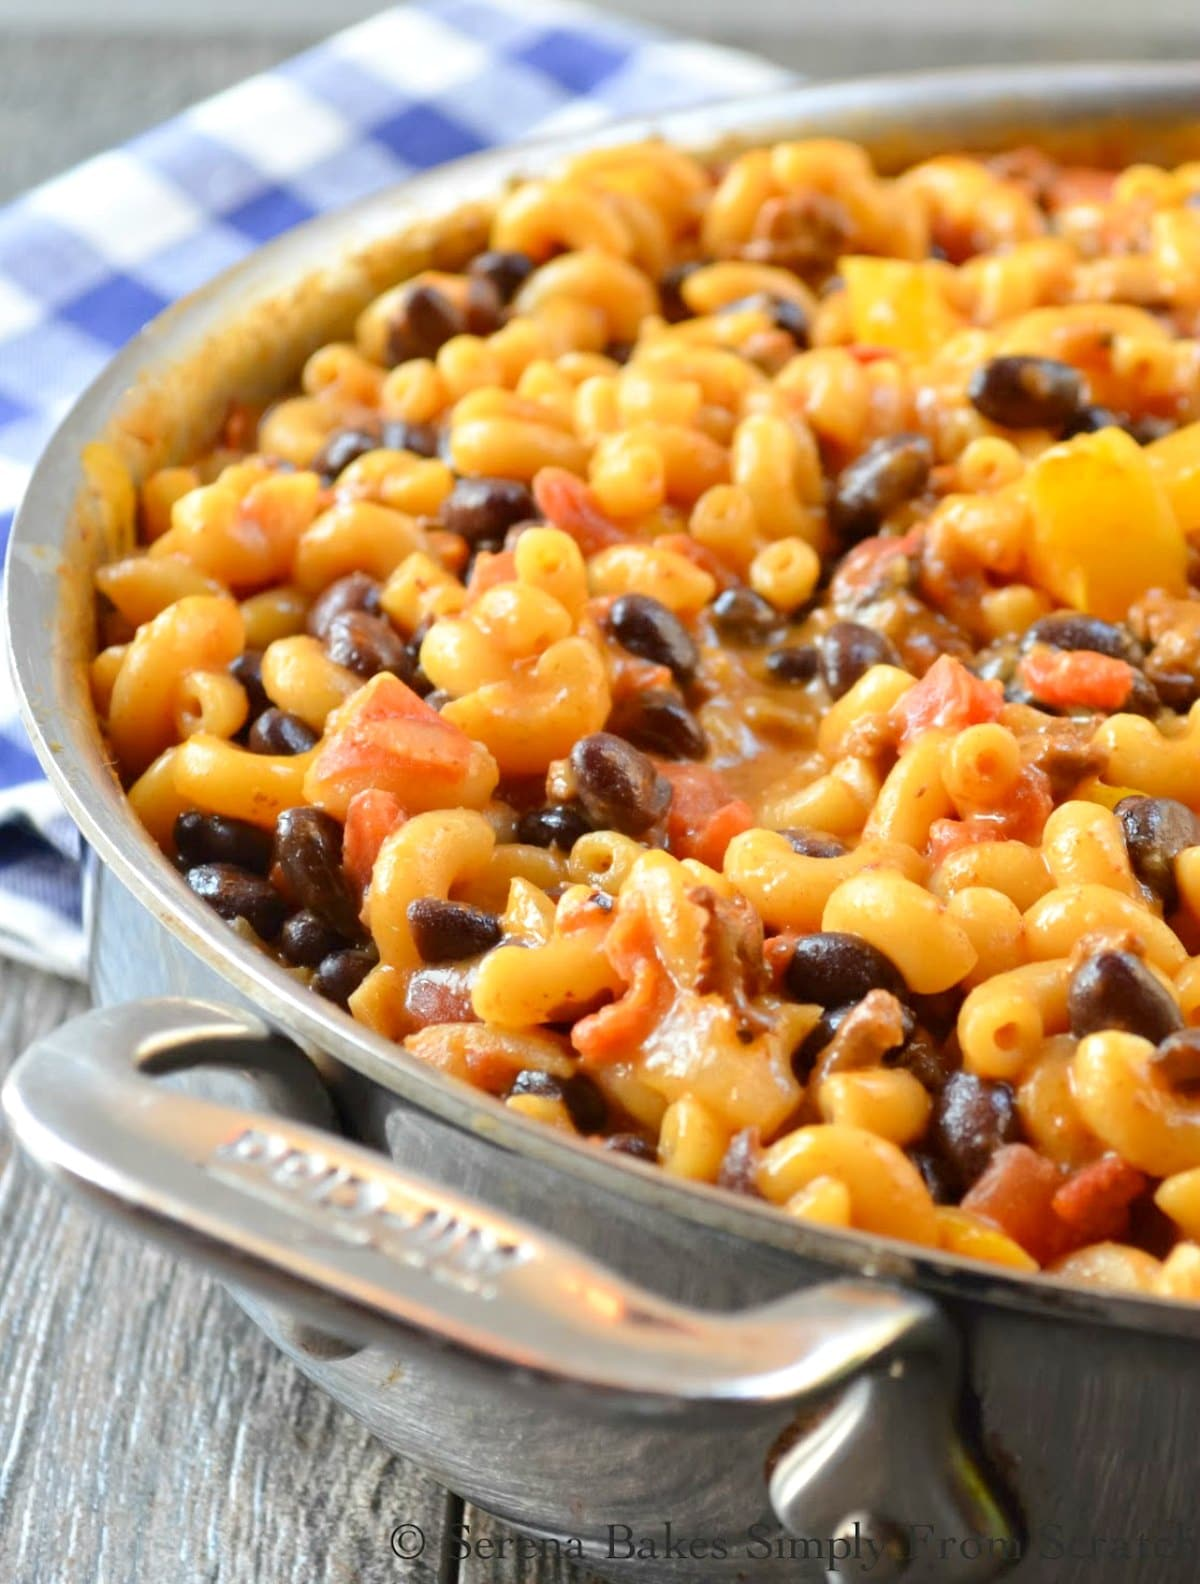 One Pot Chili Mac And Cheese is so easy and done in under 30 minutes making it a family favorite quick dinner recipe from Serena Bakes Simply From Scratch.